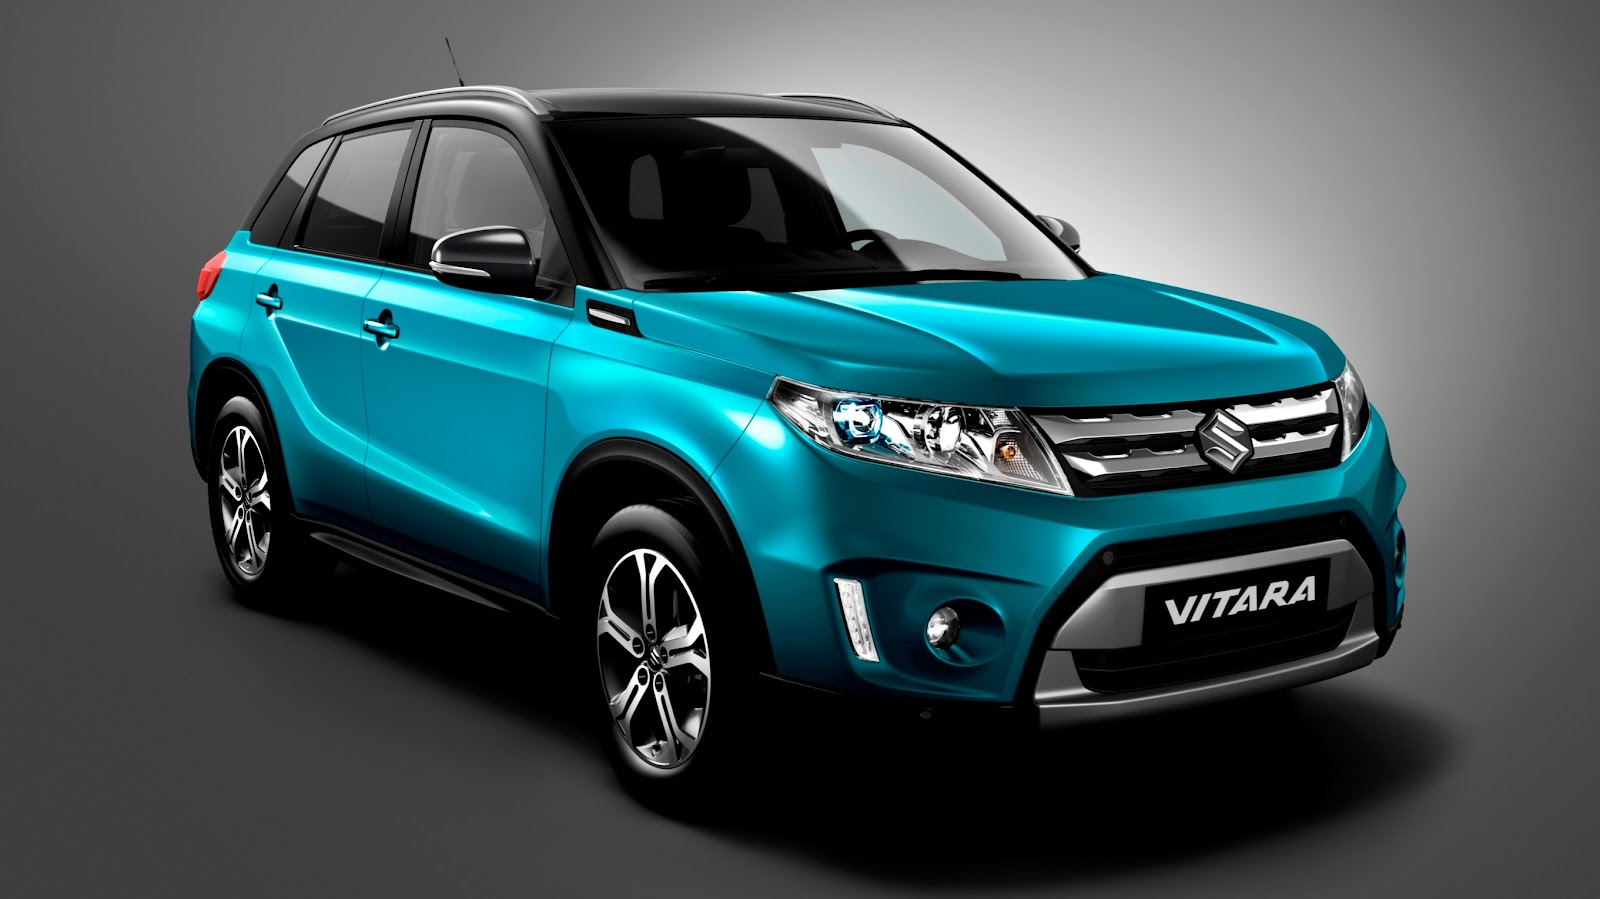 2015 suzuki vitara compact suv unveiled turkeycarblog. Black Bedroom Furniture Sets. Home Design Ideas